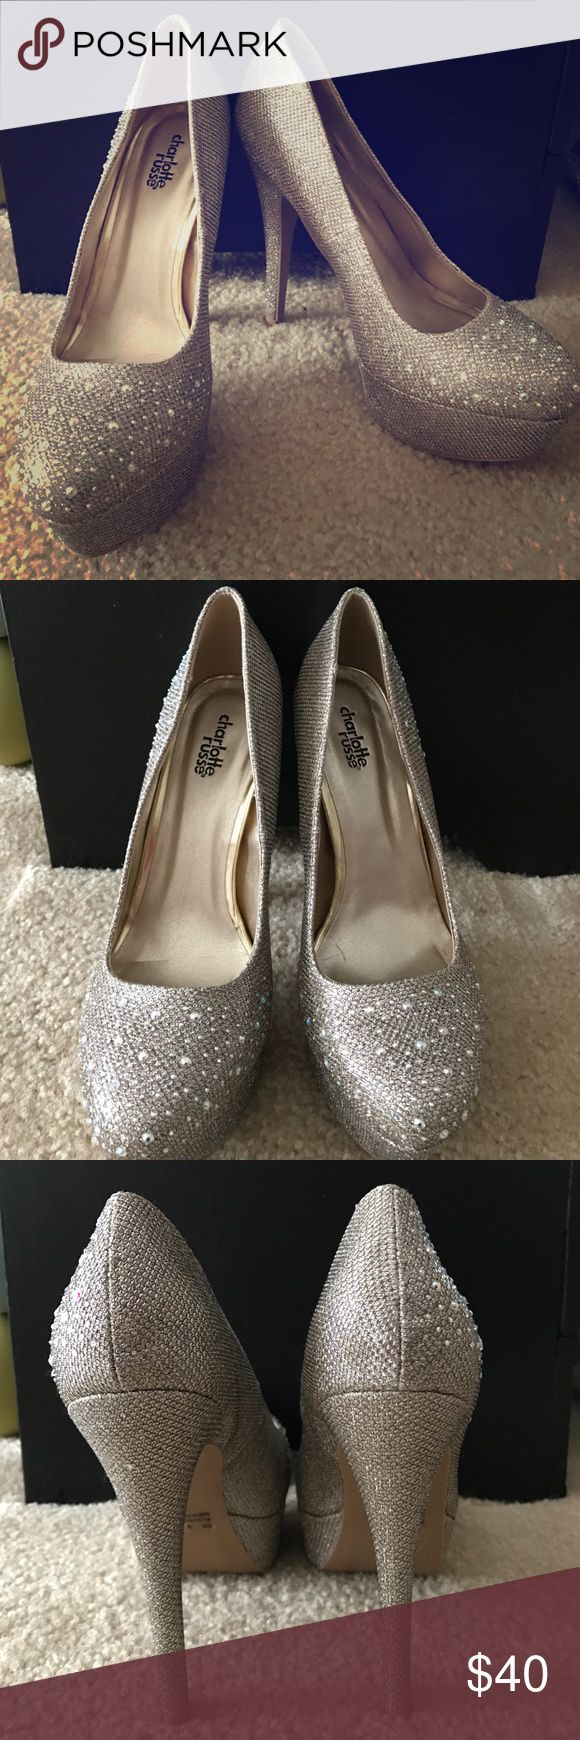 Brand New Gold Sparkle heels Brand New Gold Sparkle heels. Charlotte Russe Shoes